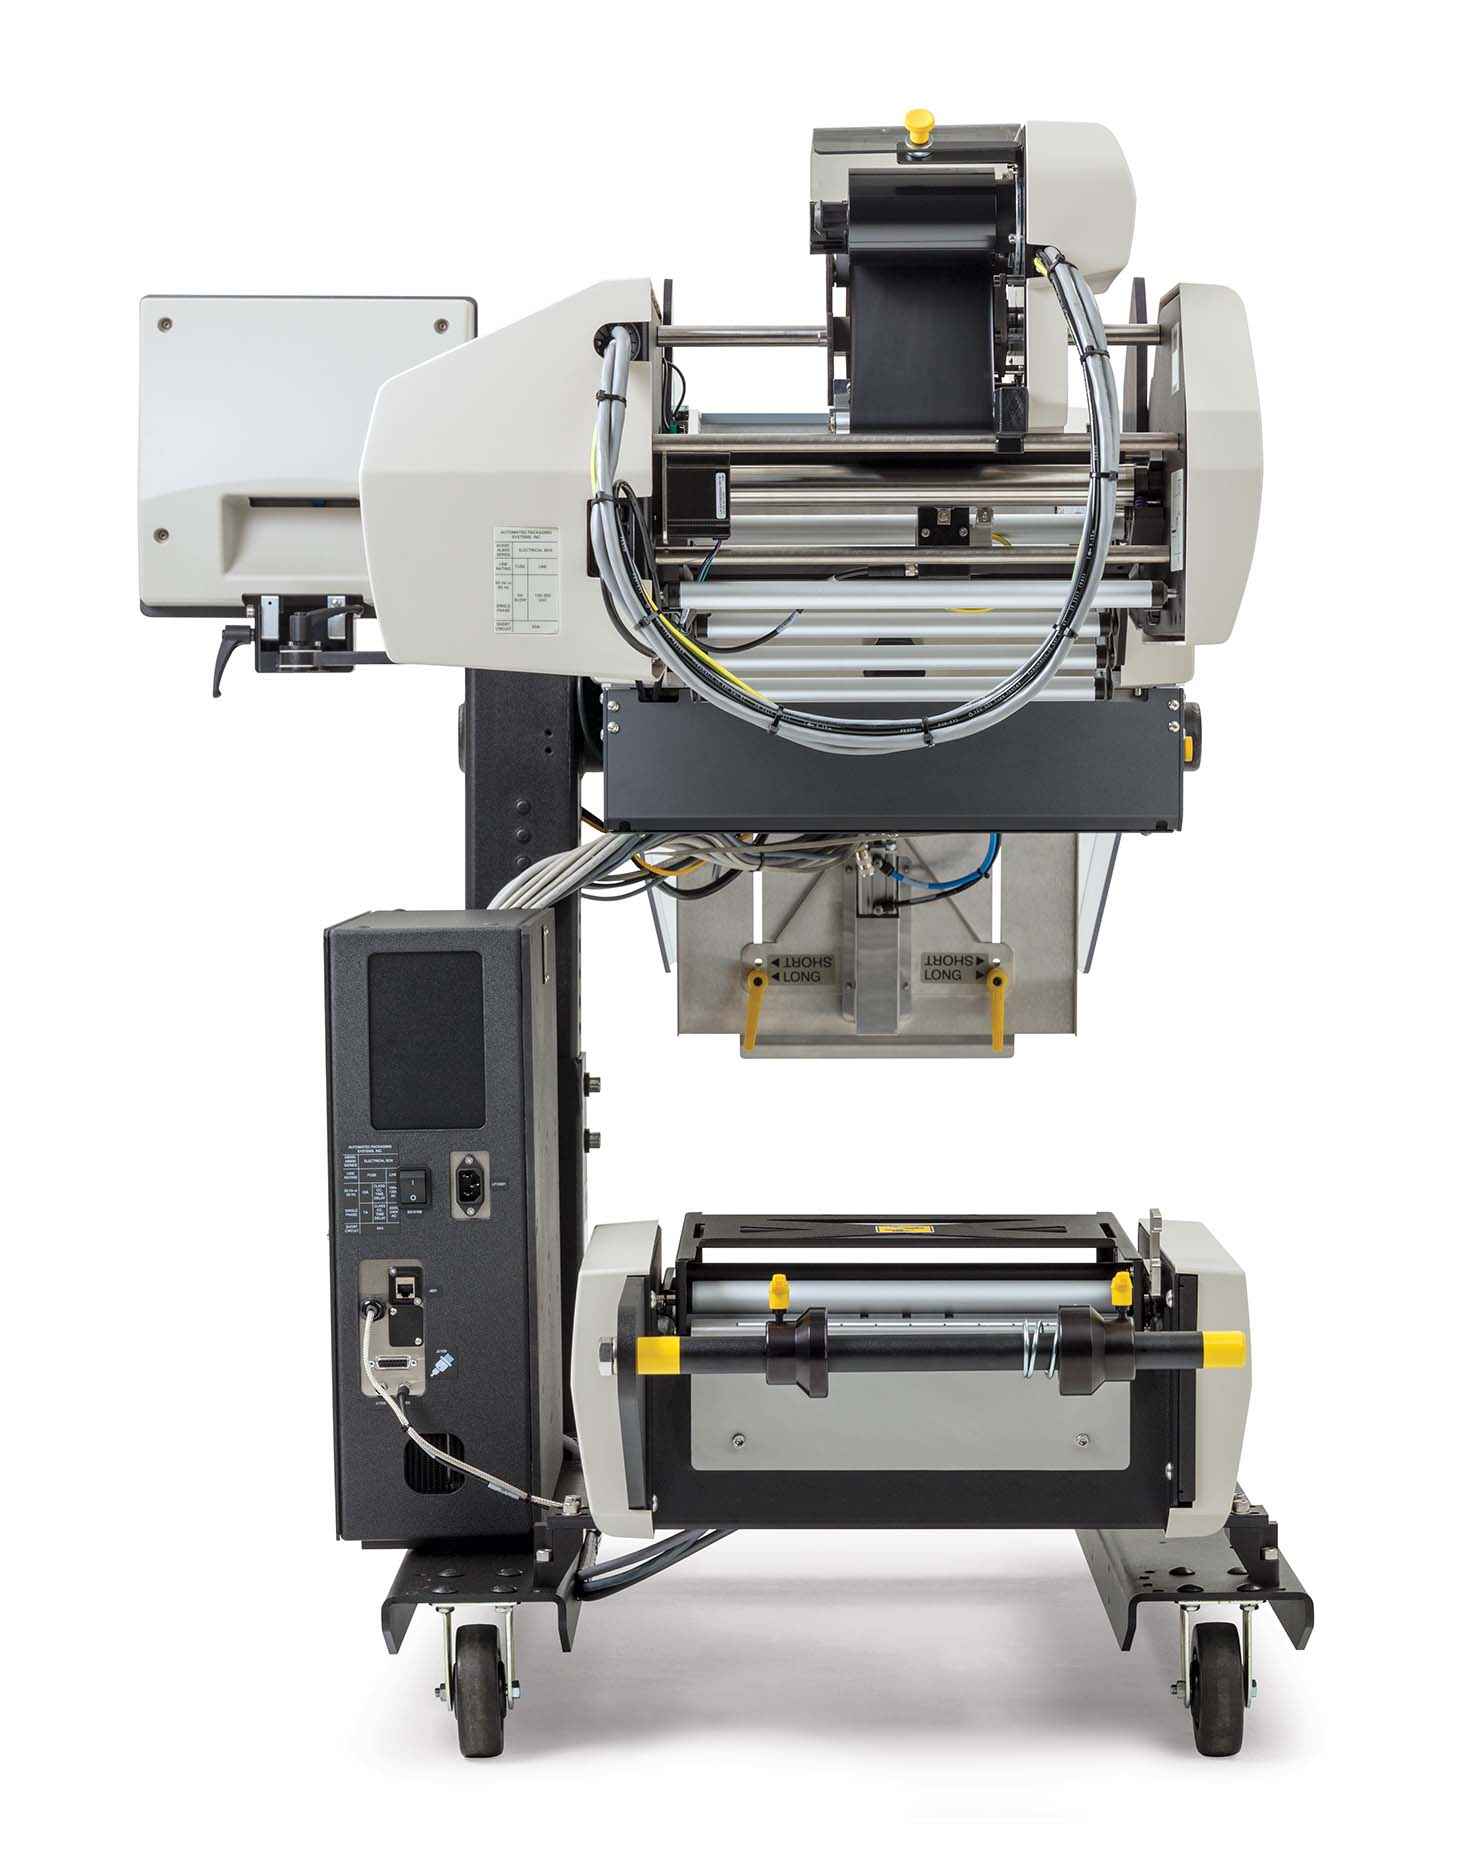 AutoLabel 500 high resolution inline printer back view